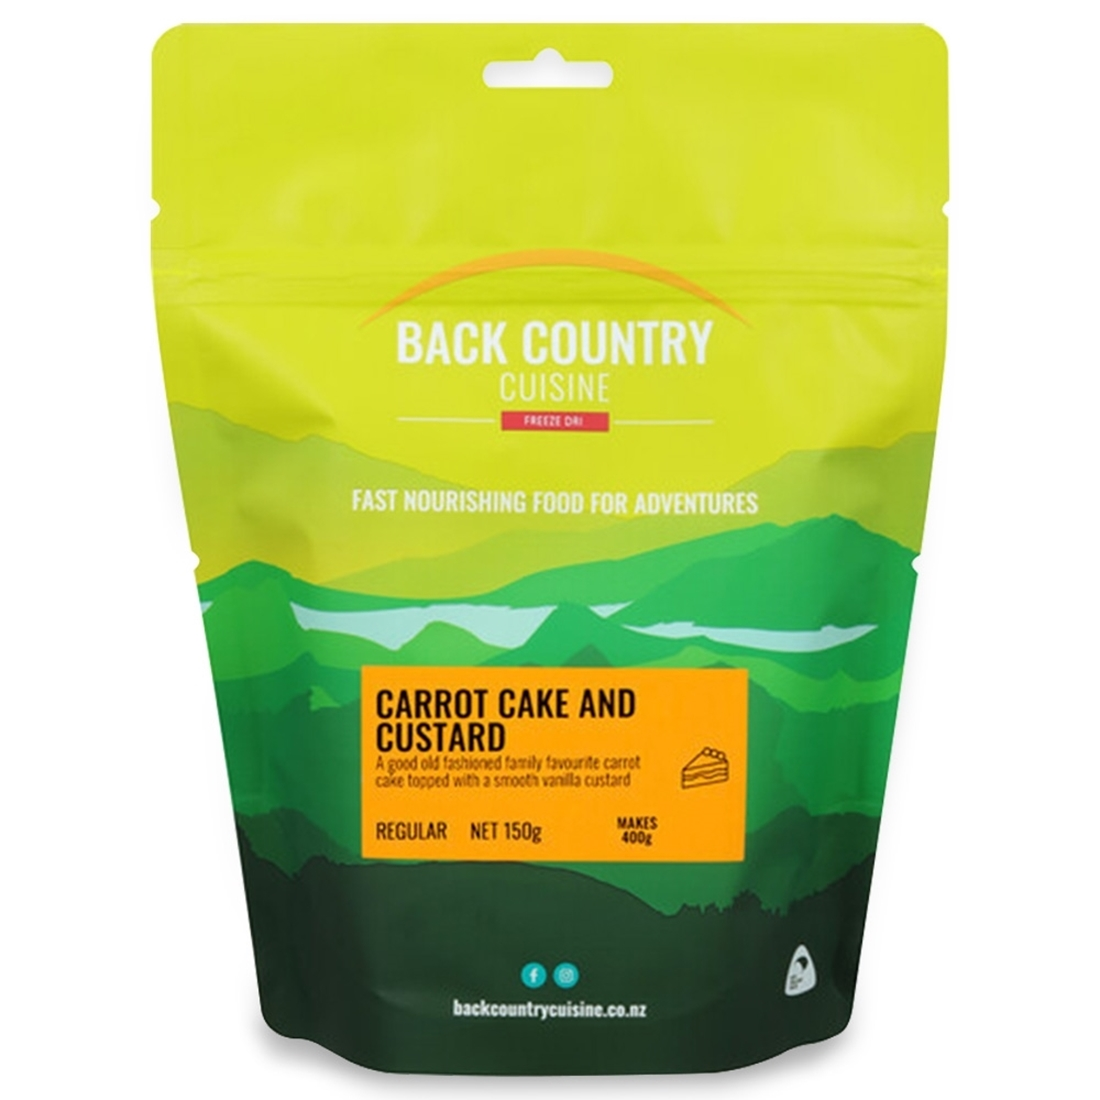 Back Country Cuisine Carrot Cake and Custard 150g